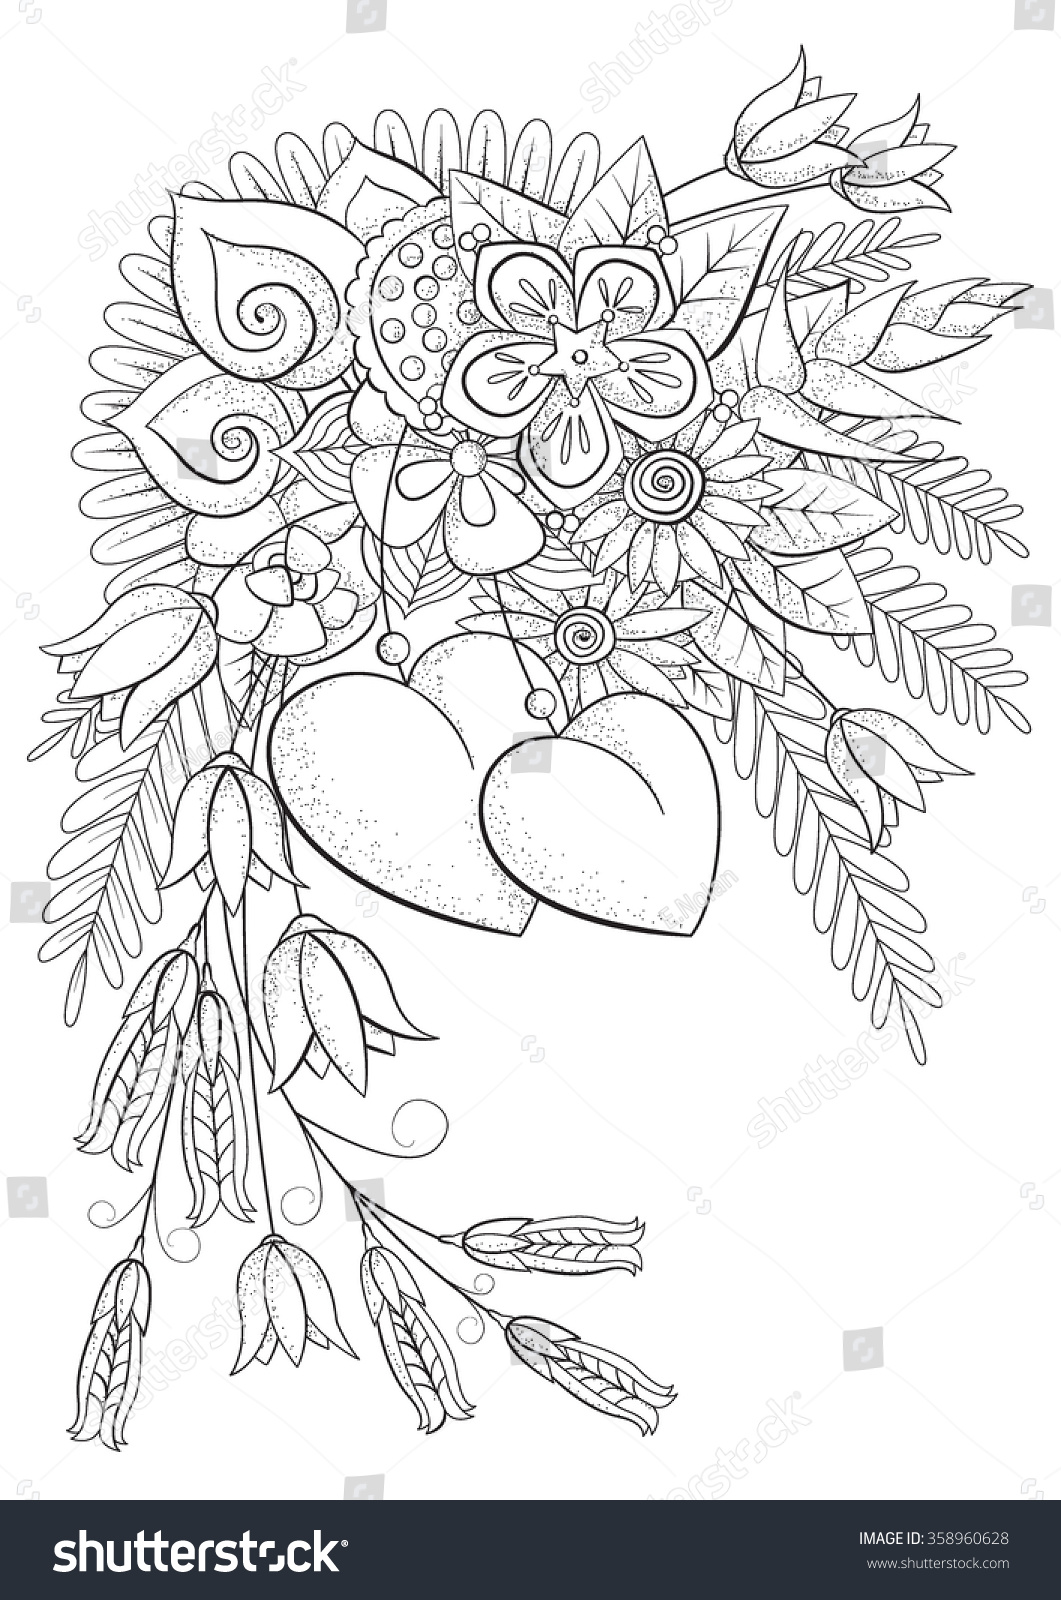 Coloring pages for adults valentines day - Coloring Book For Adult And Older Children Vector Illustration Coloring Page Valentine S Day